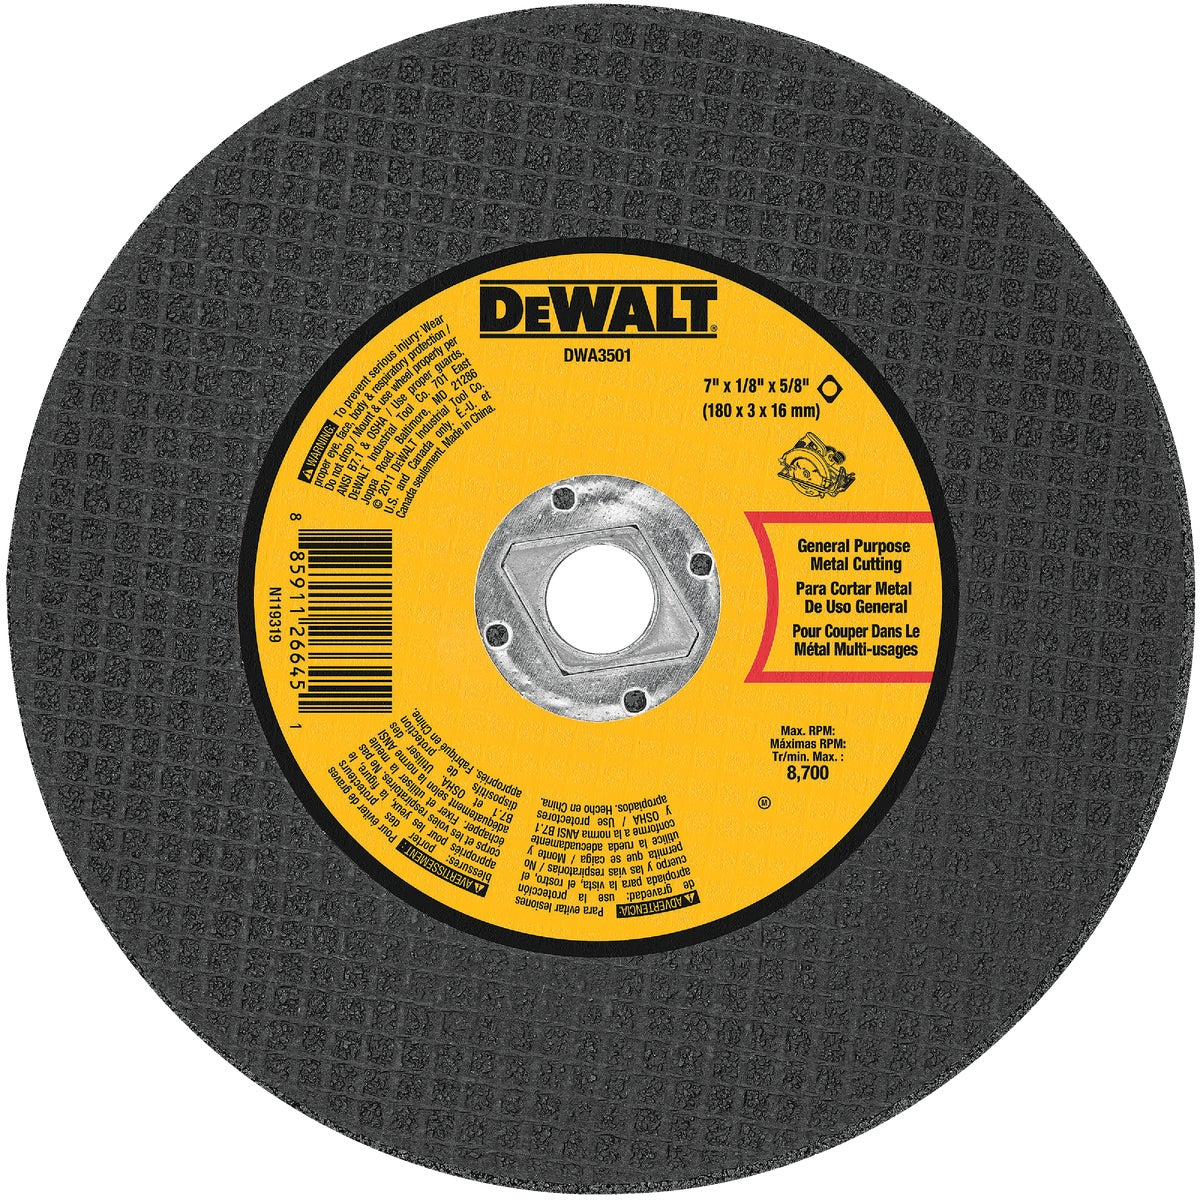 "7"" METAL ABRASIVE WHEEL - DWA3501 by DeWalt"